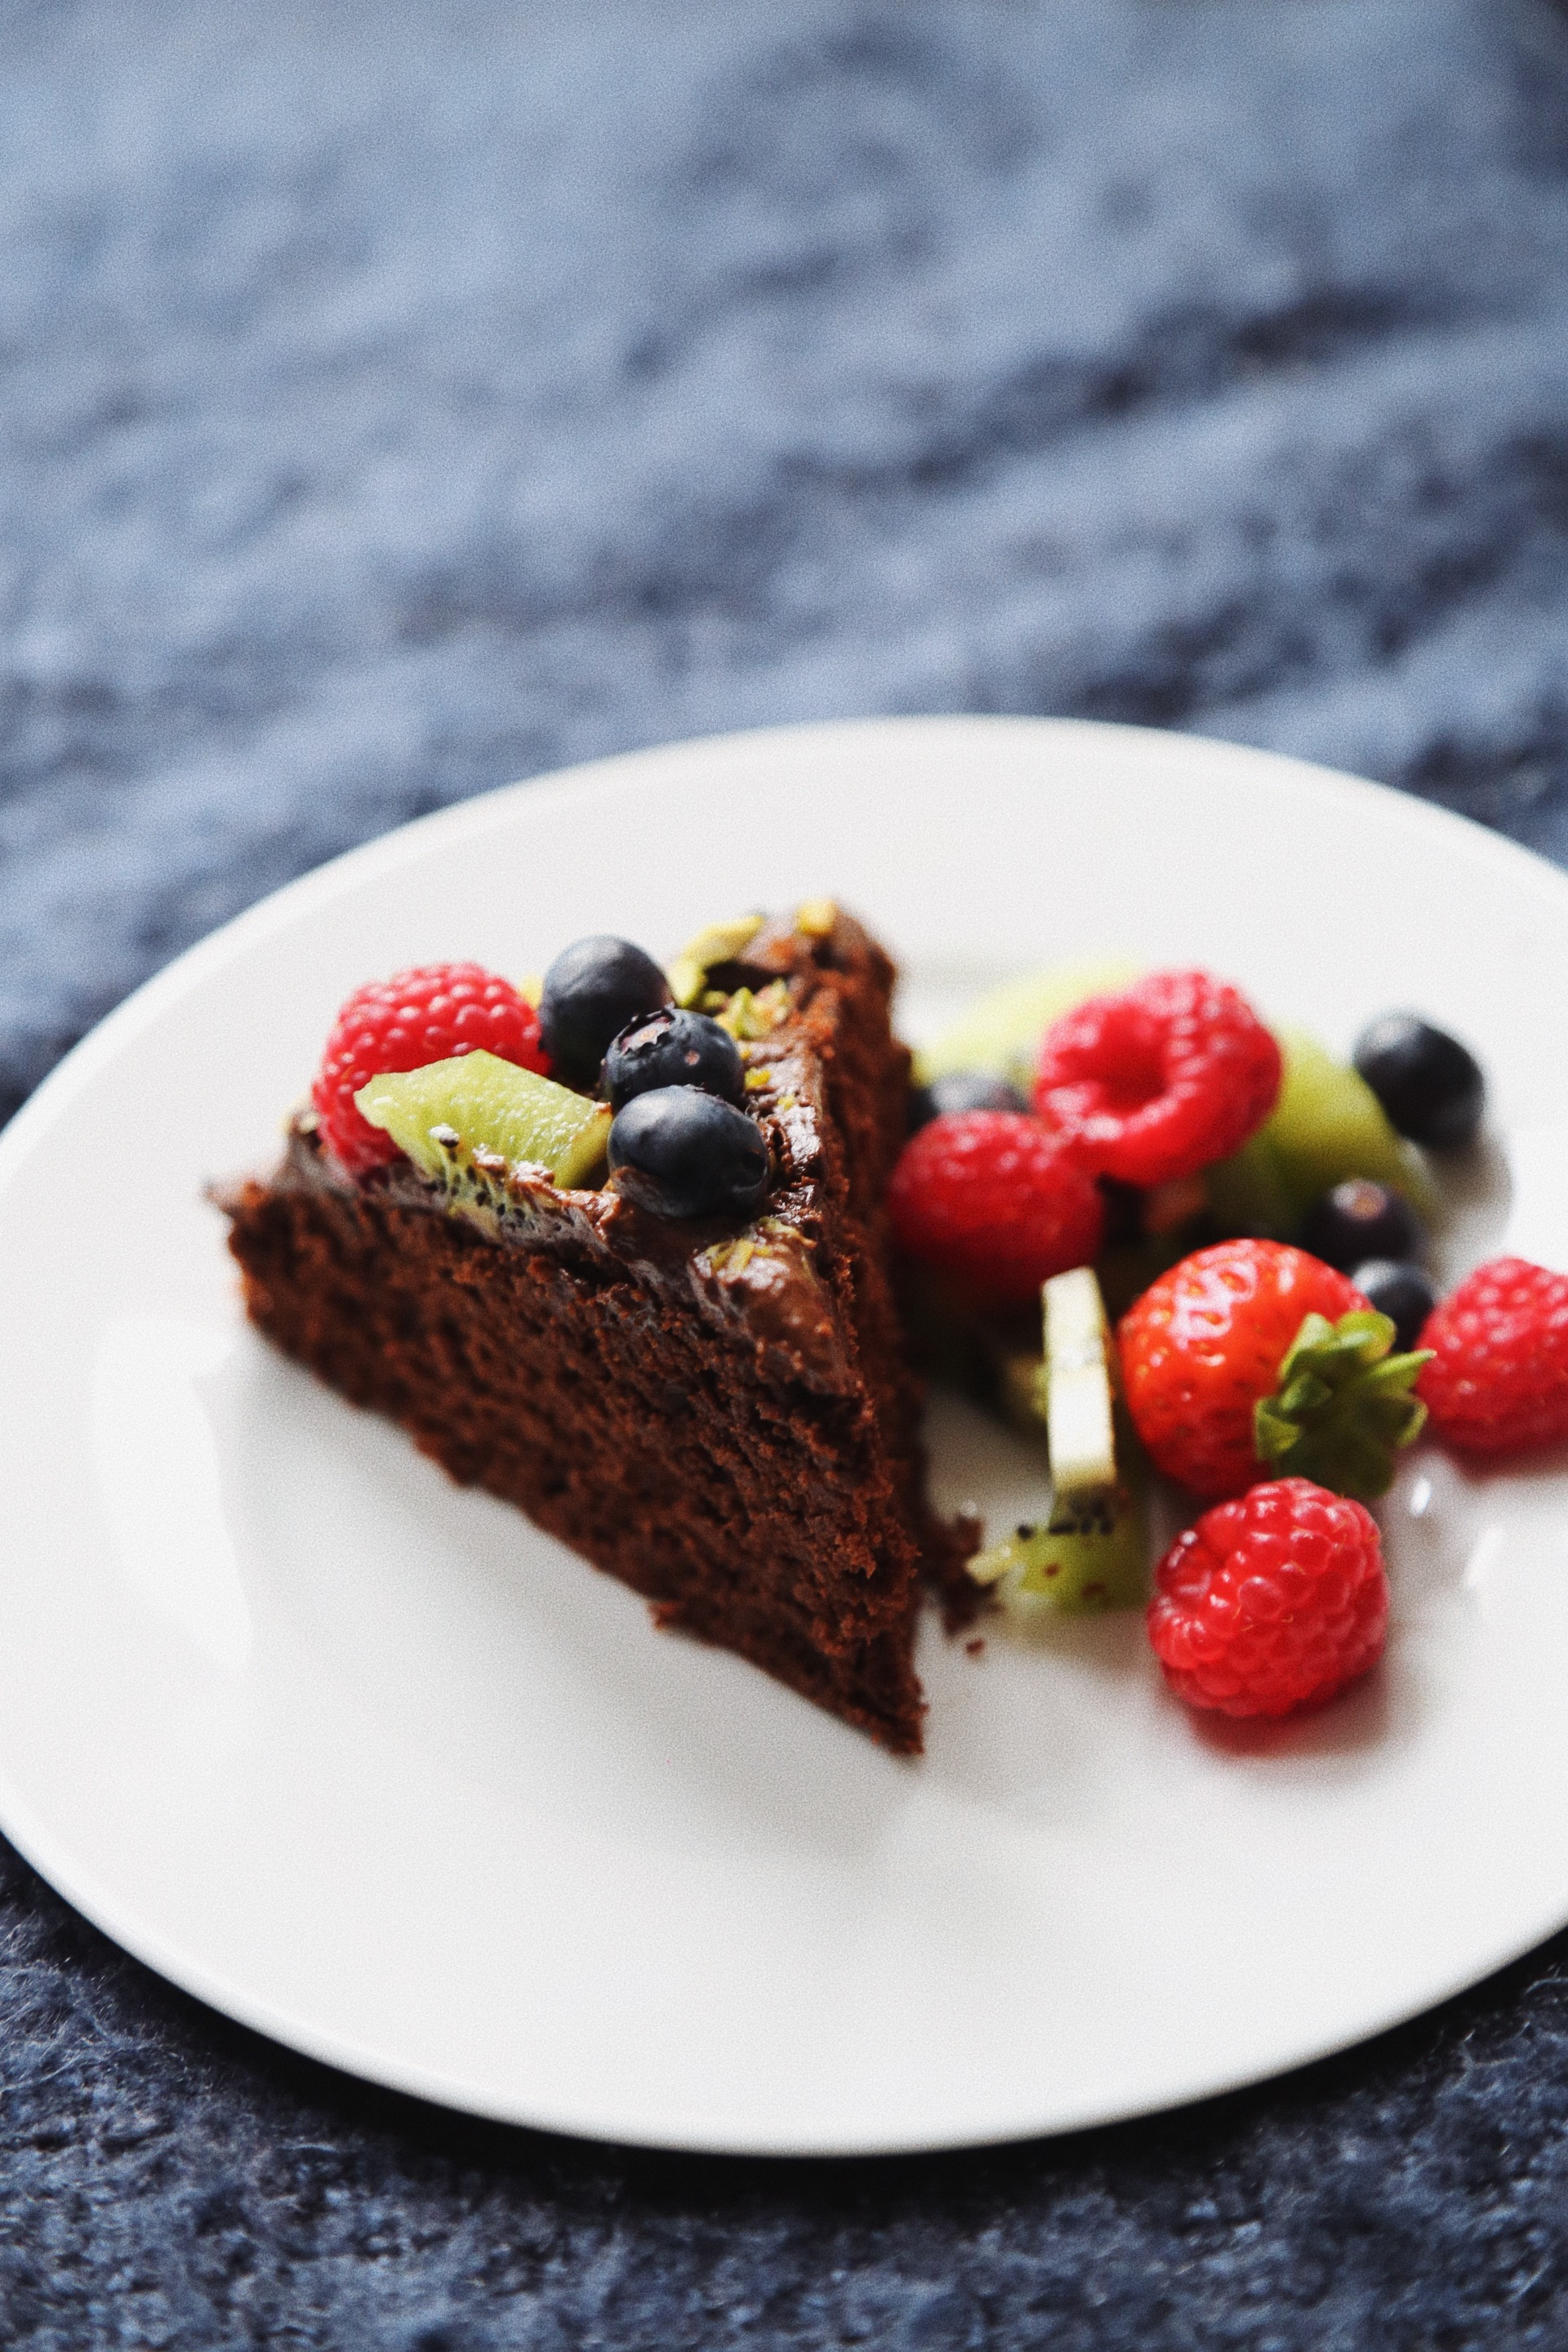 Autumn has arrived - With autumn finally having arrived in London and striking us with wind and rain. What better to do on a weekend afternoon than baking a very delicious chocolate cake.Why not make it vegan its easier then you think! This recipe is super fast and easy with simple ingredients most of which you already will have at home. You'll easily want to eat more than one piece and you can - without feeling guilty as it's low on sugar with healthy plant based oils and a handful of fresh berries. Perfect for a cosy afternoon tea party at home with friends or family.Happy baking! Let us know how you like it. xx Annabell